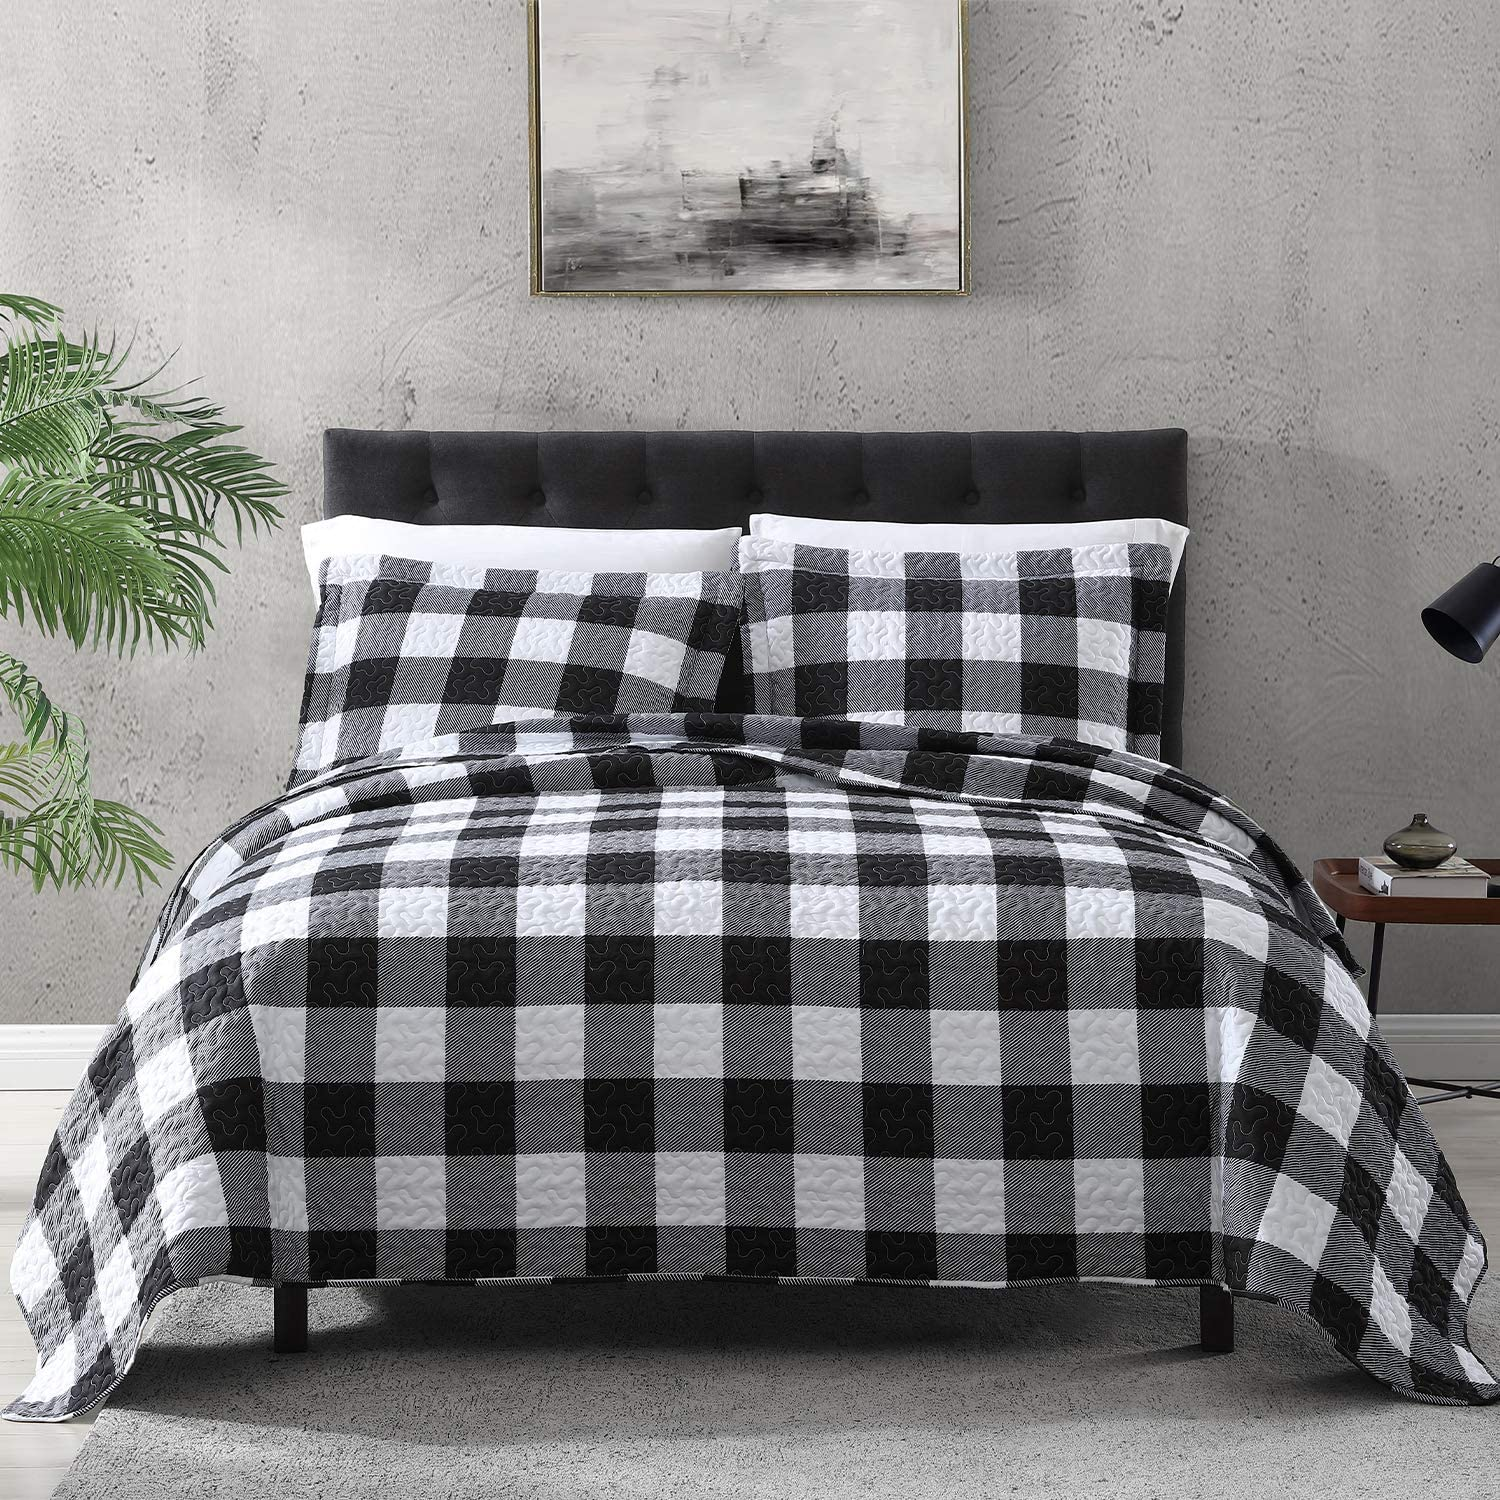 EXQ Home Quilt Set Twin Size 2 Piece,Lightweight Microfiber Coverlet Modern Style Black and White Squares Pattern Bedspread Set(1 Quilt,1 Pillow Sham)